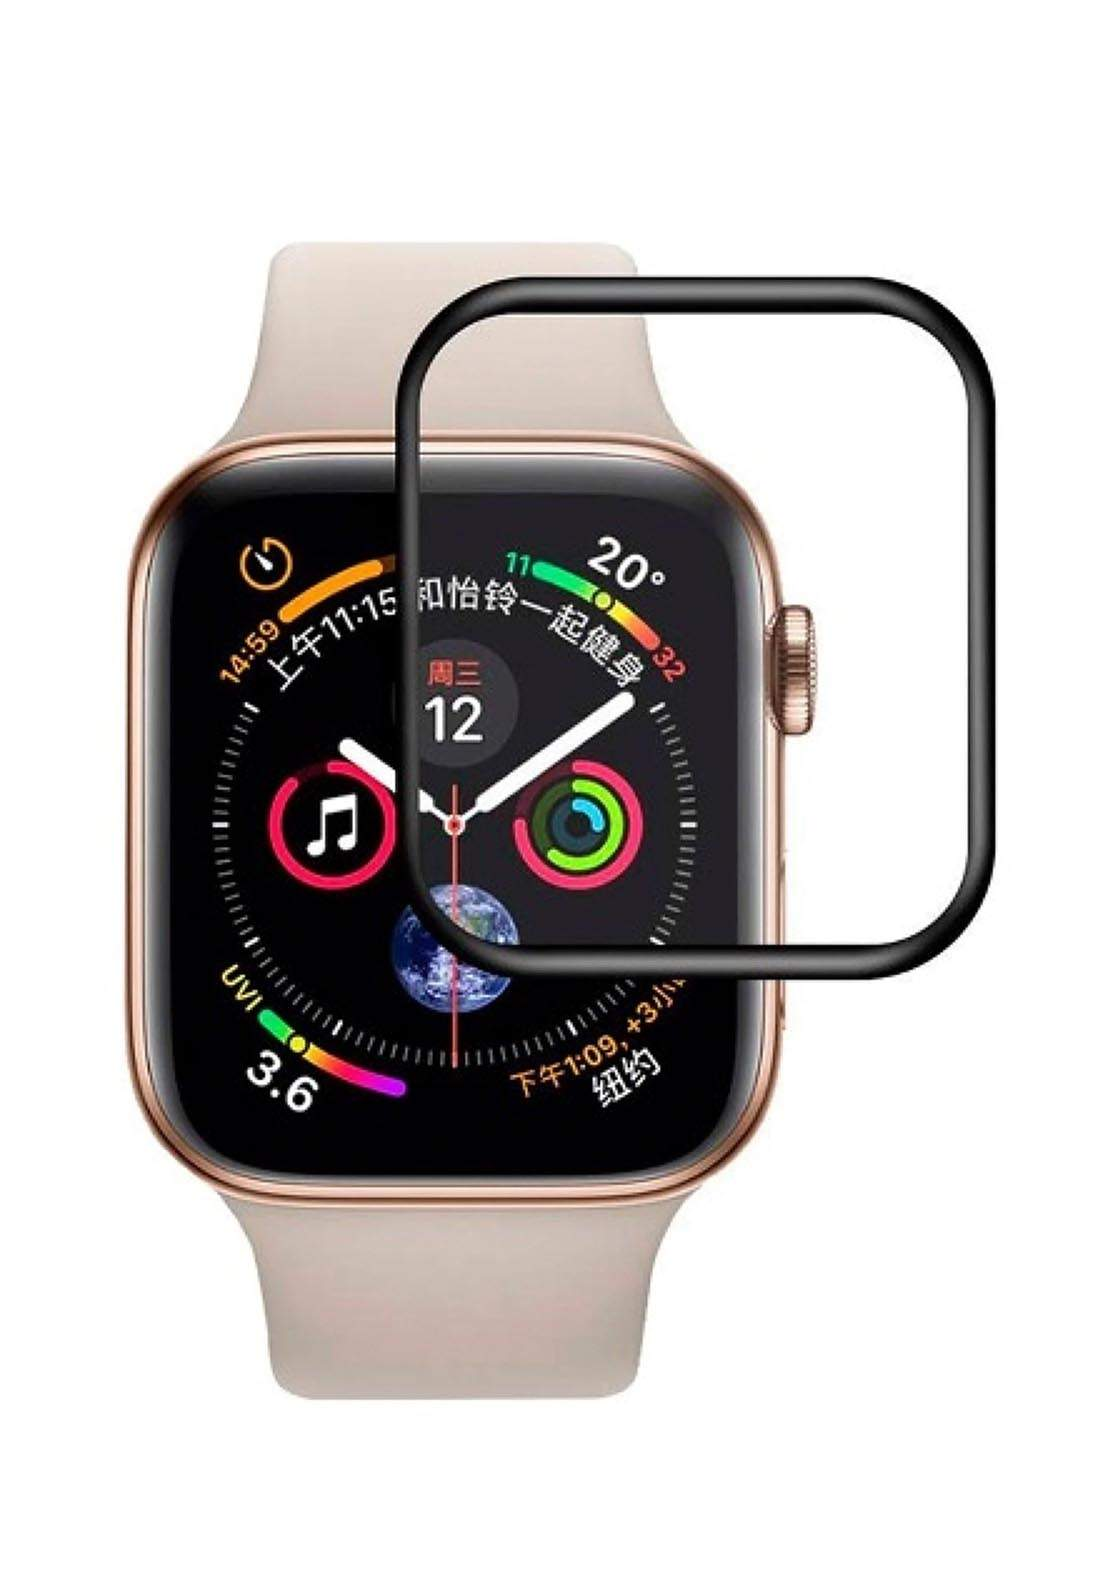 Blue Tempered Glass For Apple Watch 44mm - Black واقي شاشة ساعة